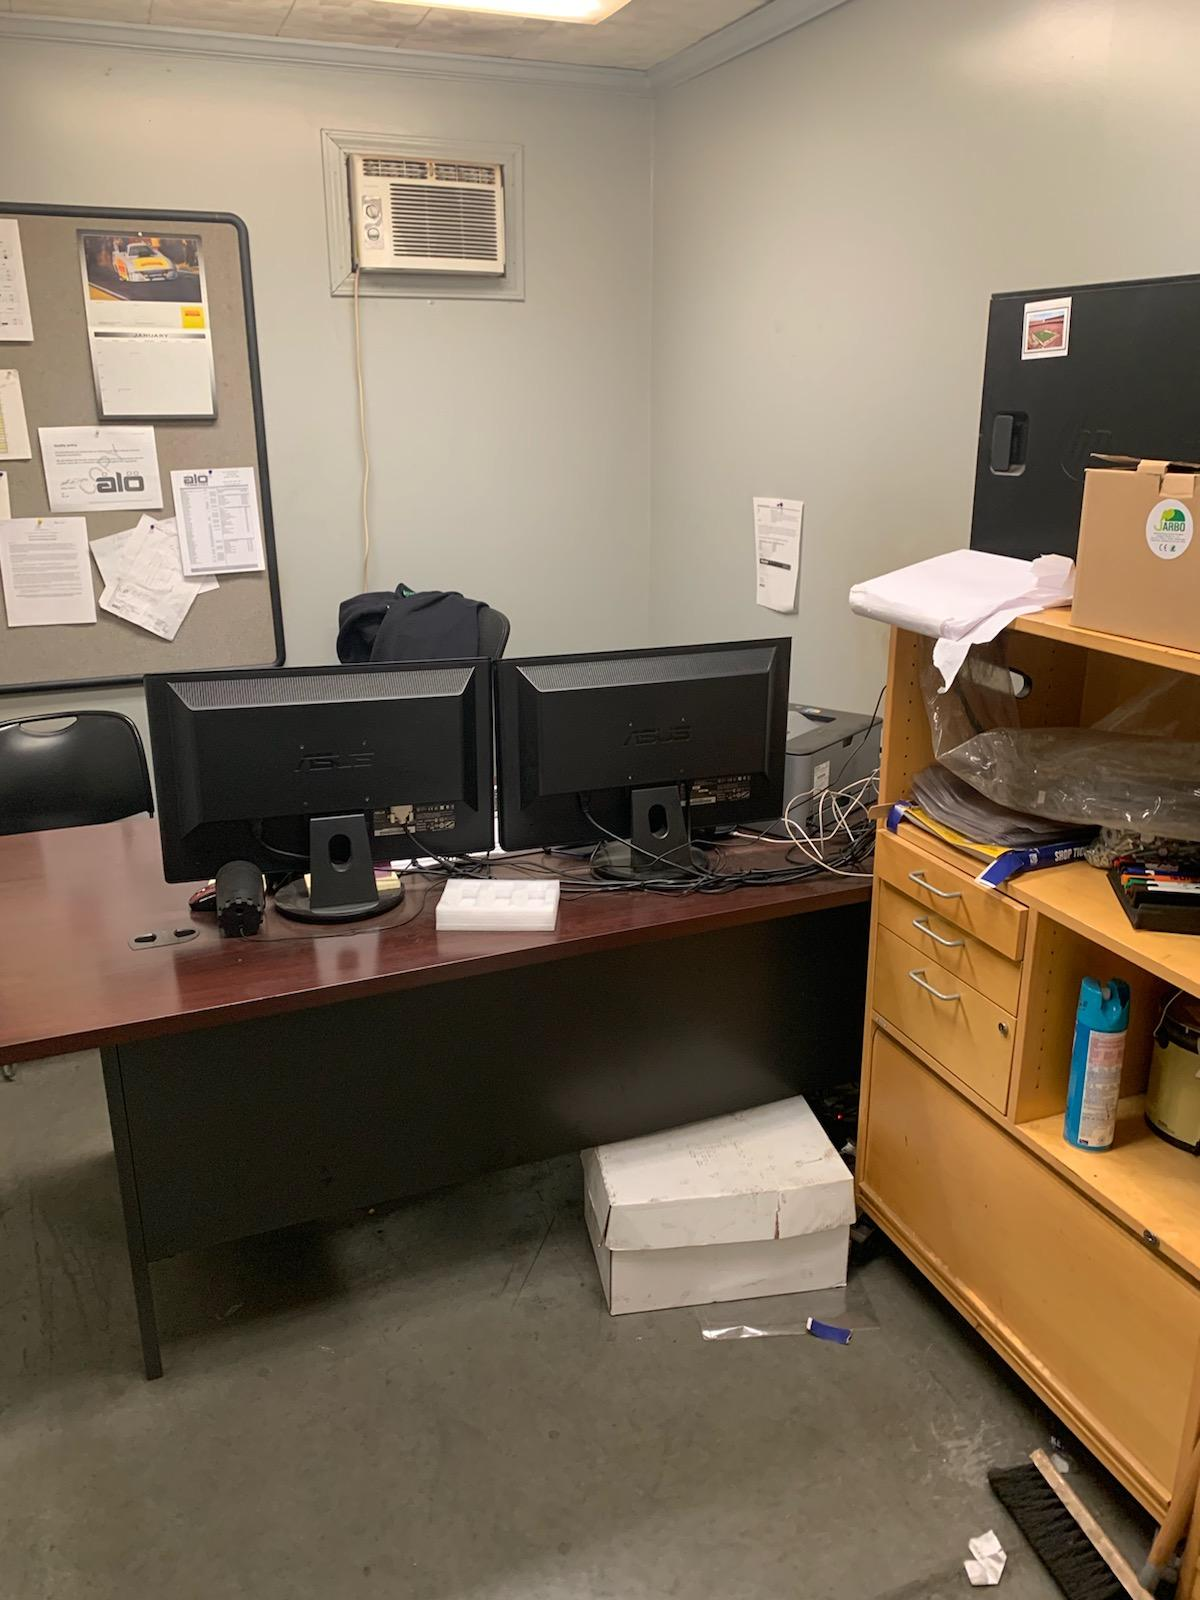 Lot 219C - CONTENTS OF OFFICE; DESK, (2) CHAIRS, AND (2) CABINETS